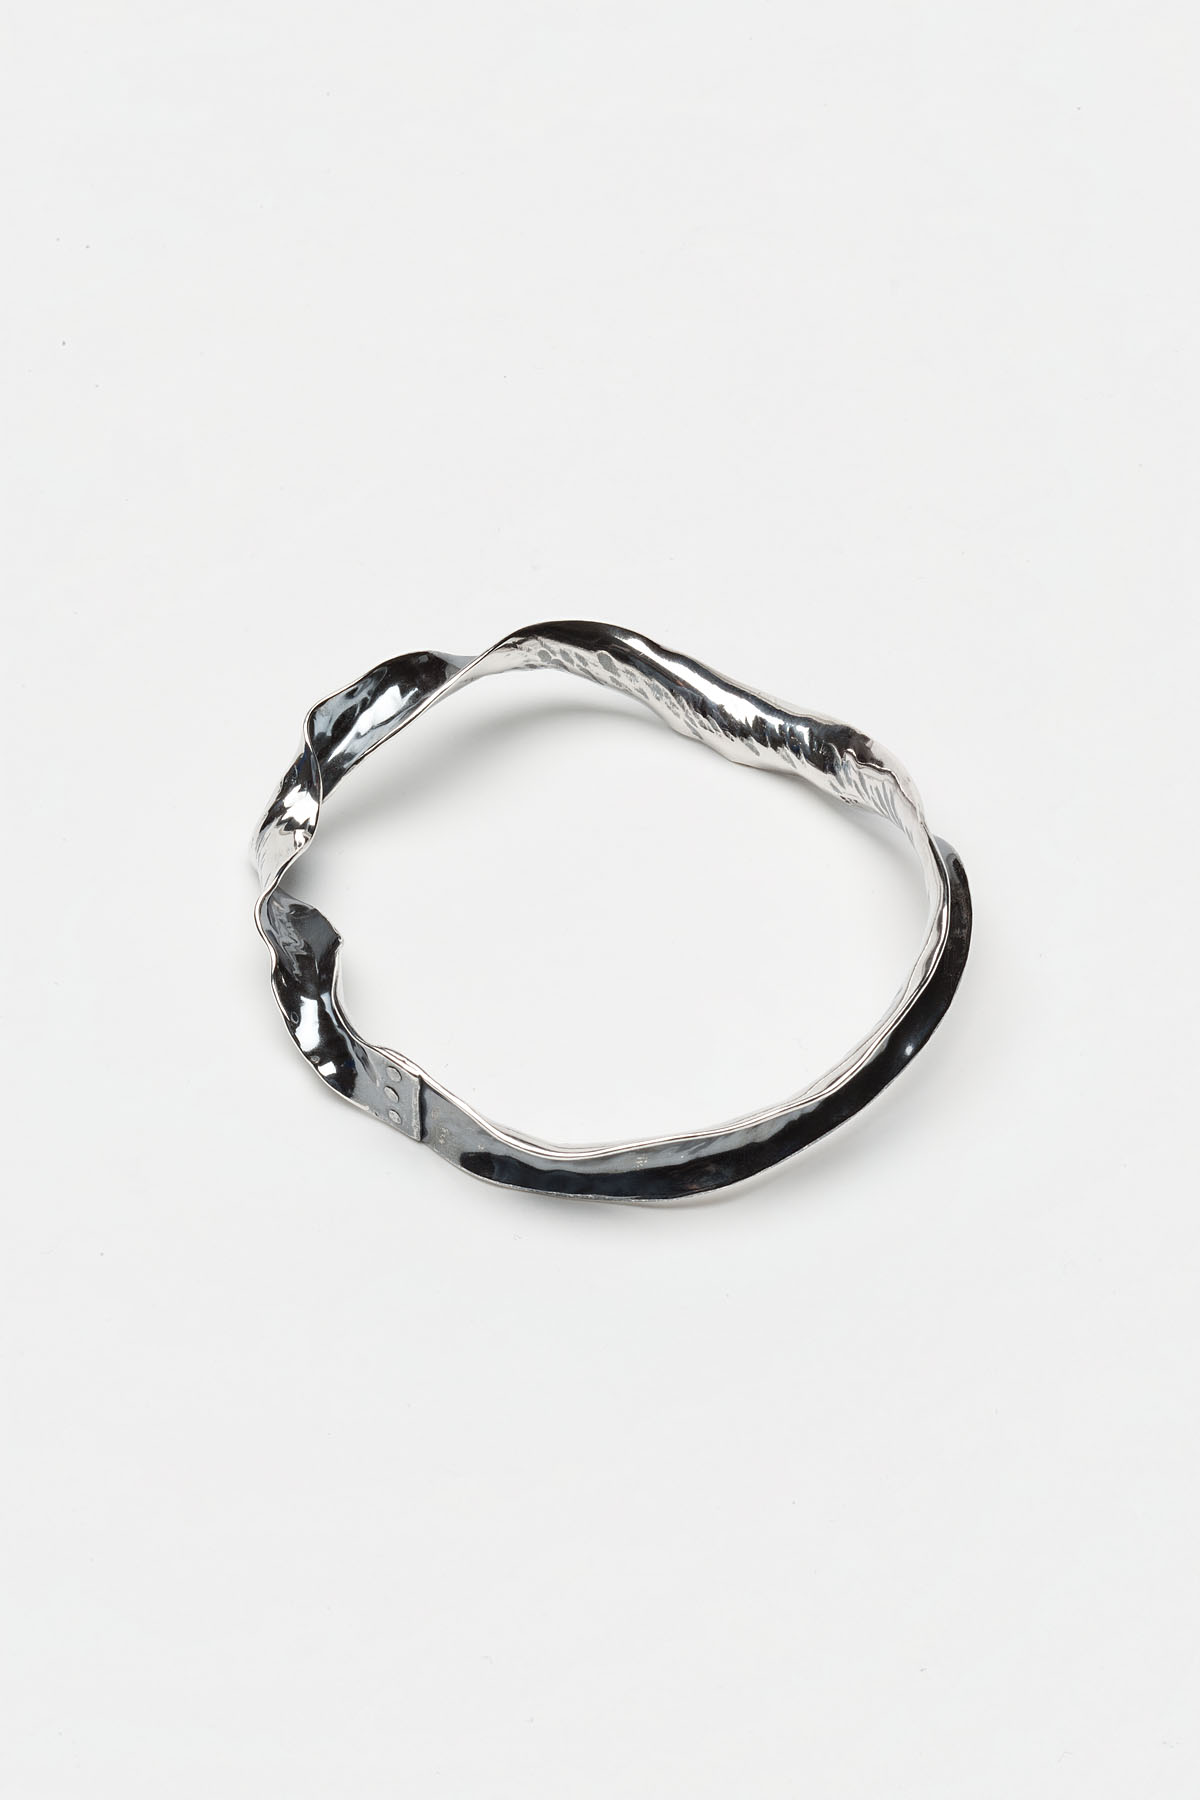 Ribbon torque bangle - hand forged anticlastic raised sterling silver - from one of my first stock production collections, 2009